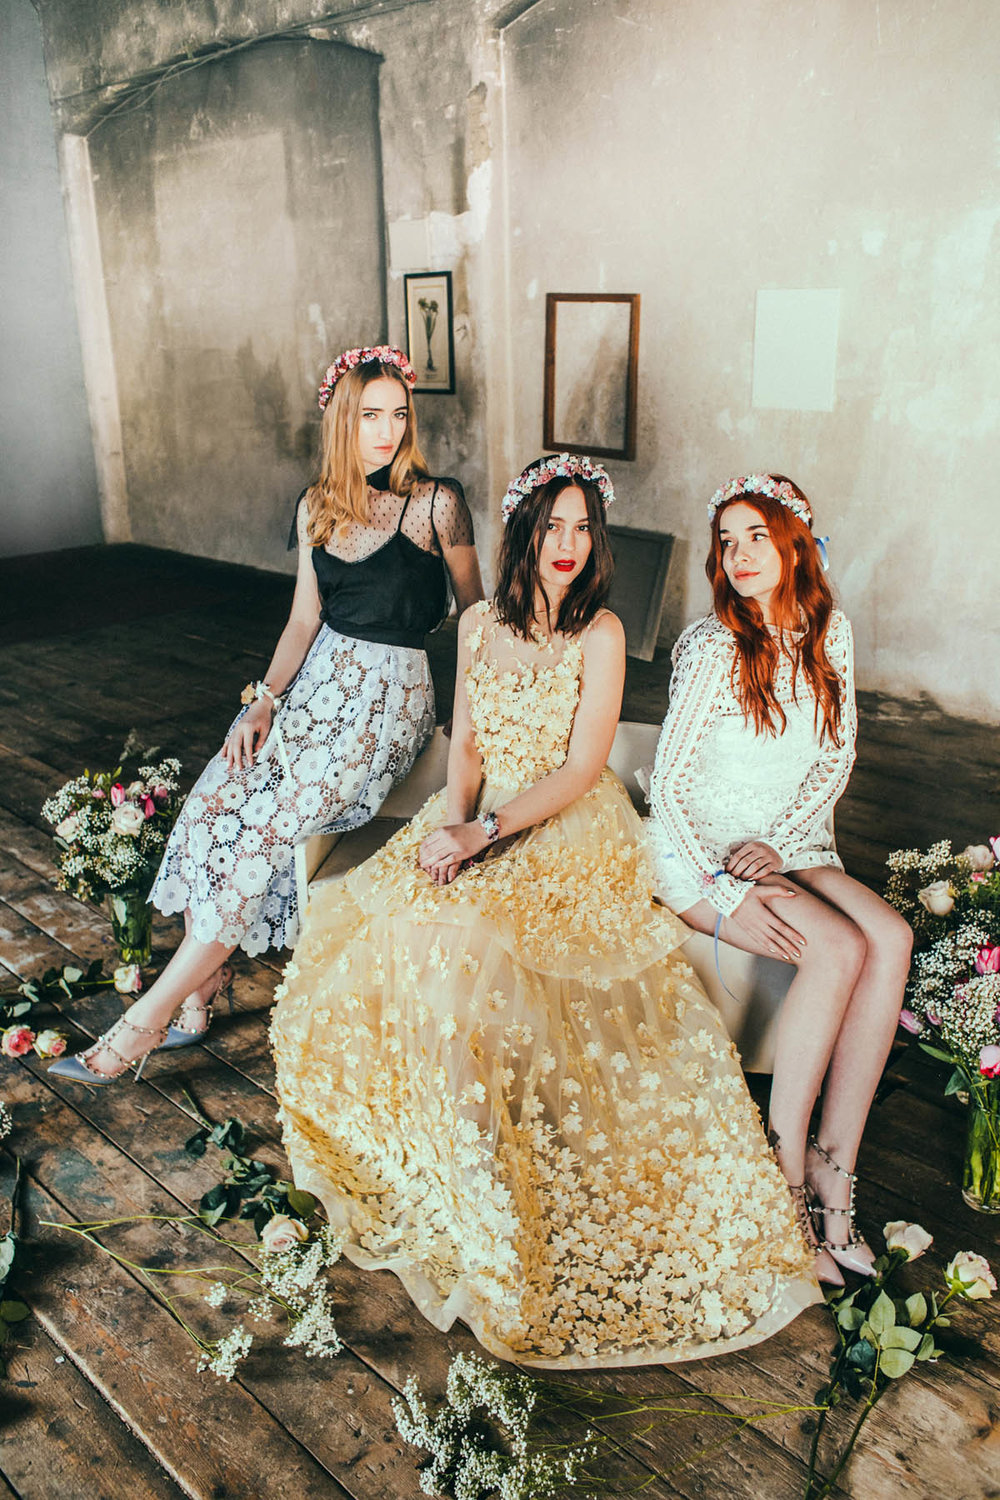 We-Are-Flowergirls_Lookbook_Flowercrown_Blumenkranz_SS17_c_Lupi-Spuma_Web_13.jpg